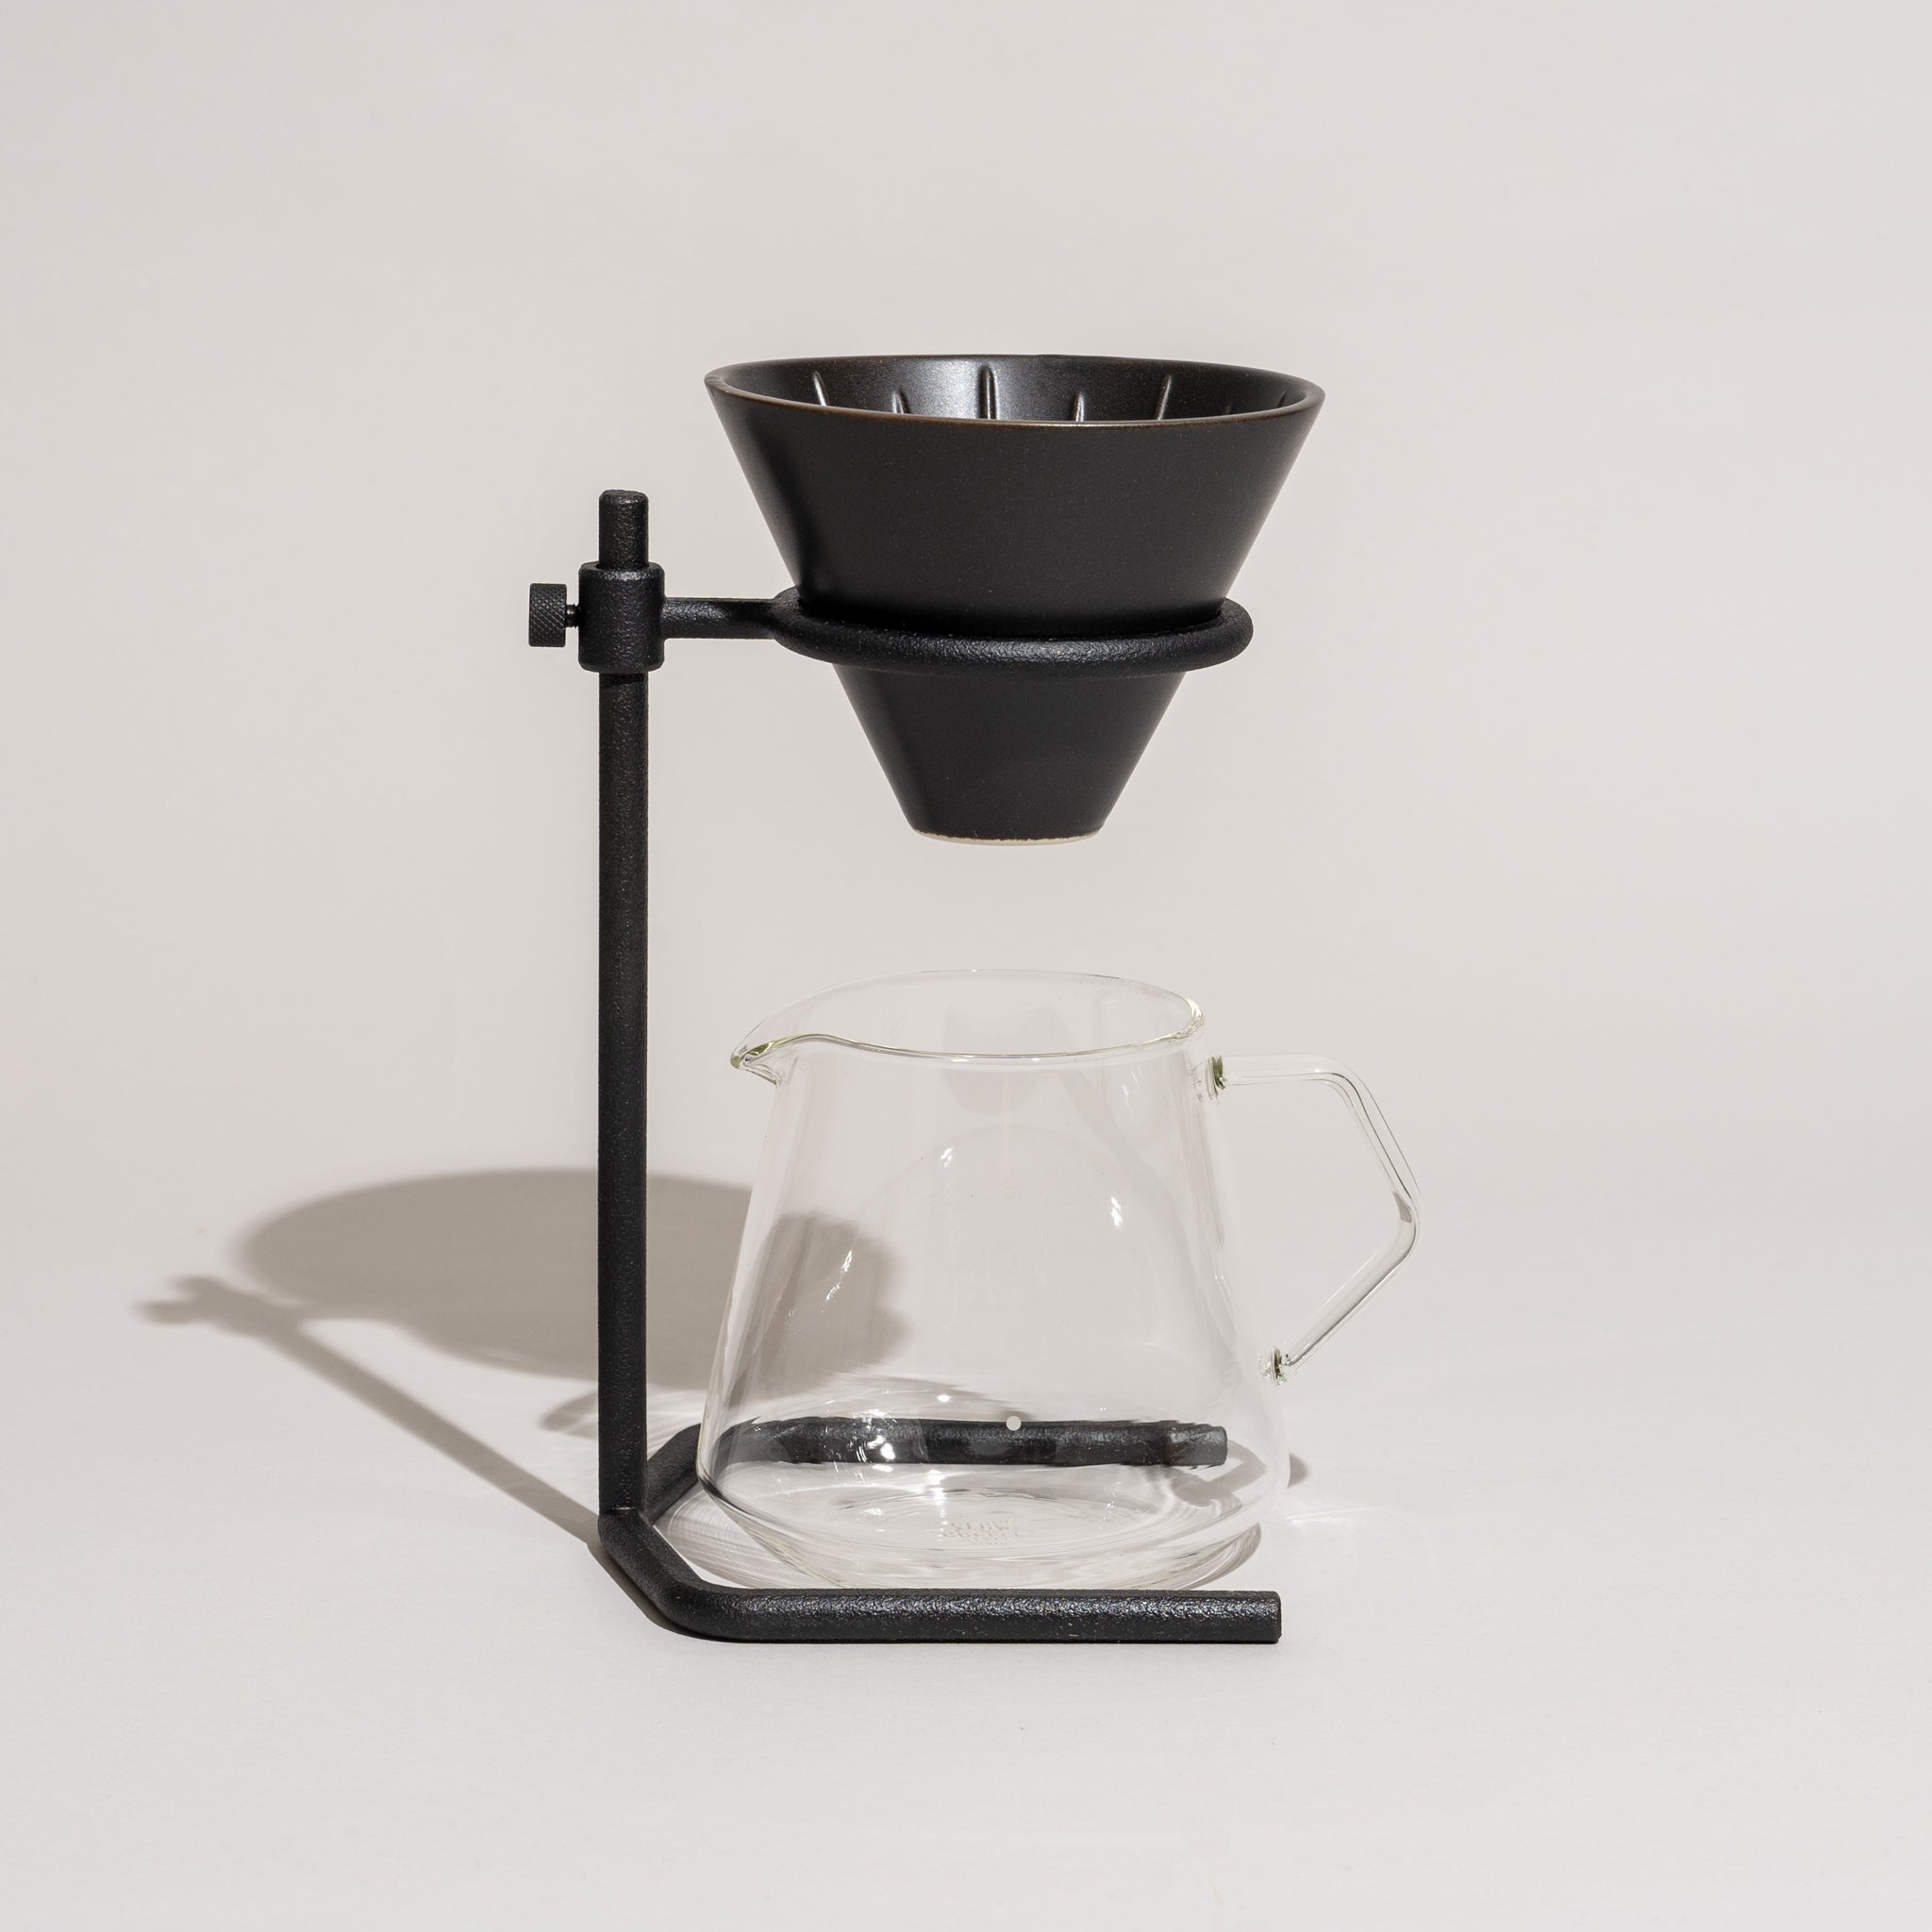 4 Cup Coffee Brewer Stand